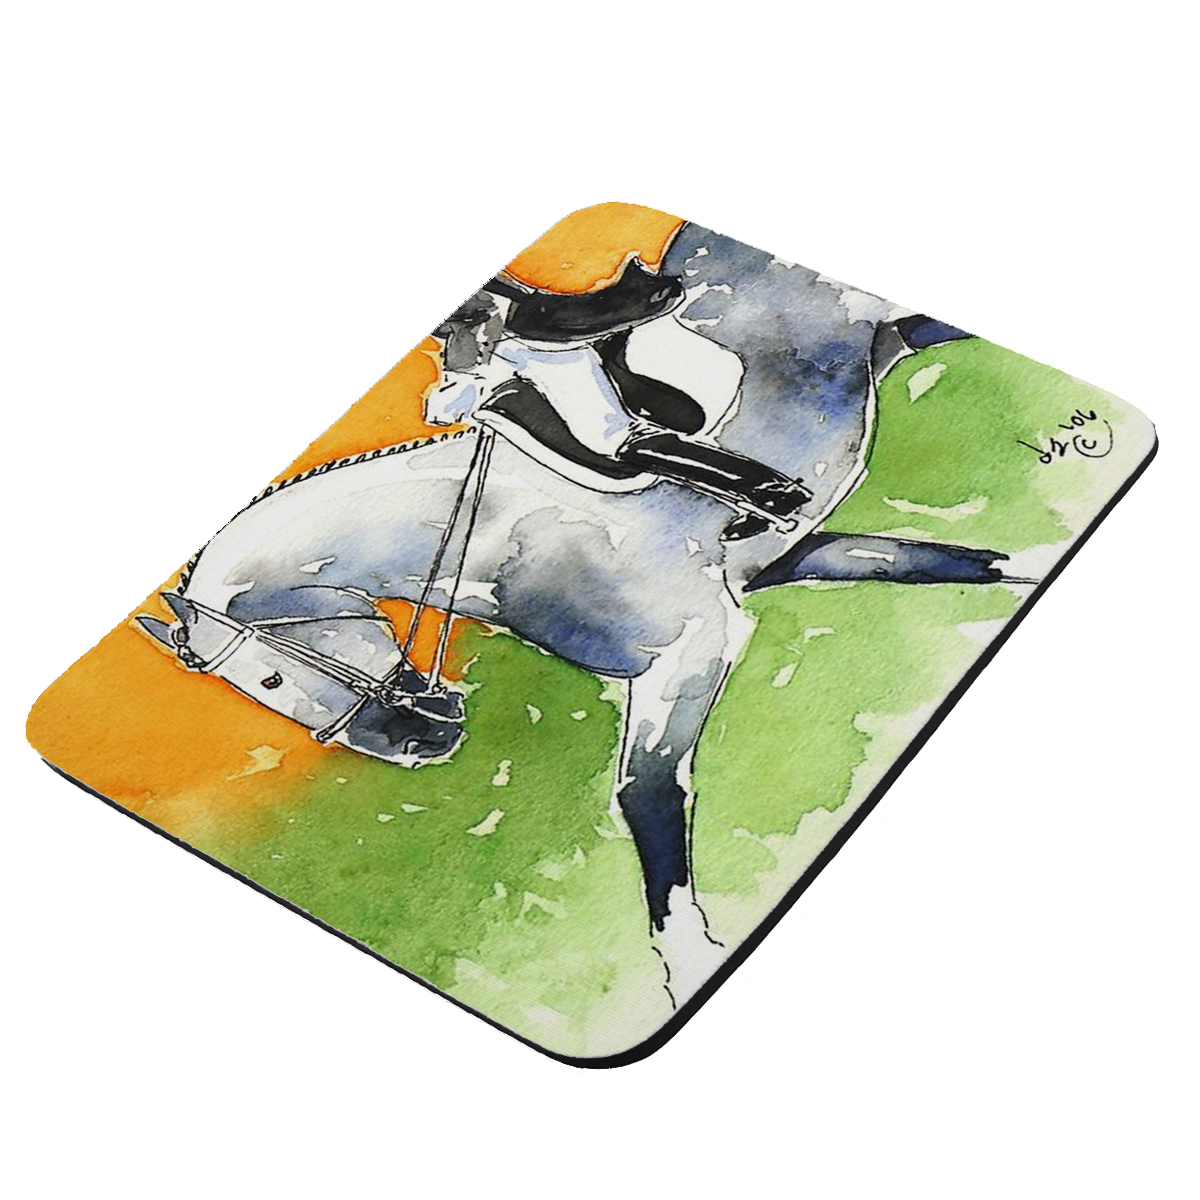 Dappled Gray Andalusian Dressage Horse Art by Denise Every - KuzmarK Mousepad / Hot Pad / Trivet